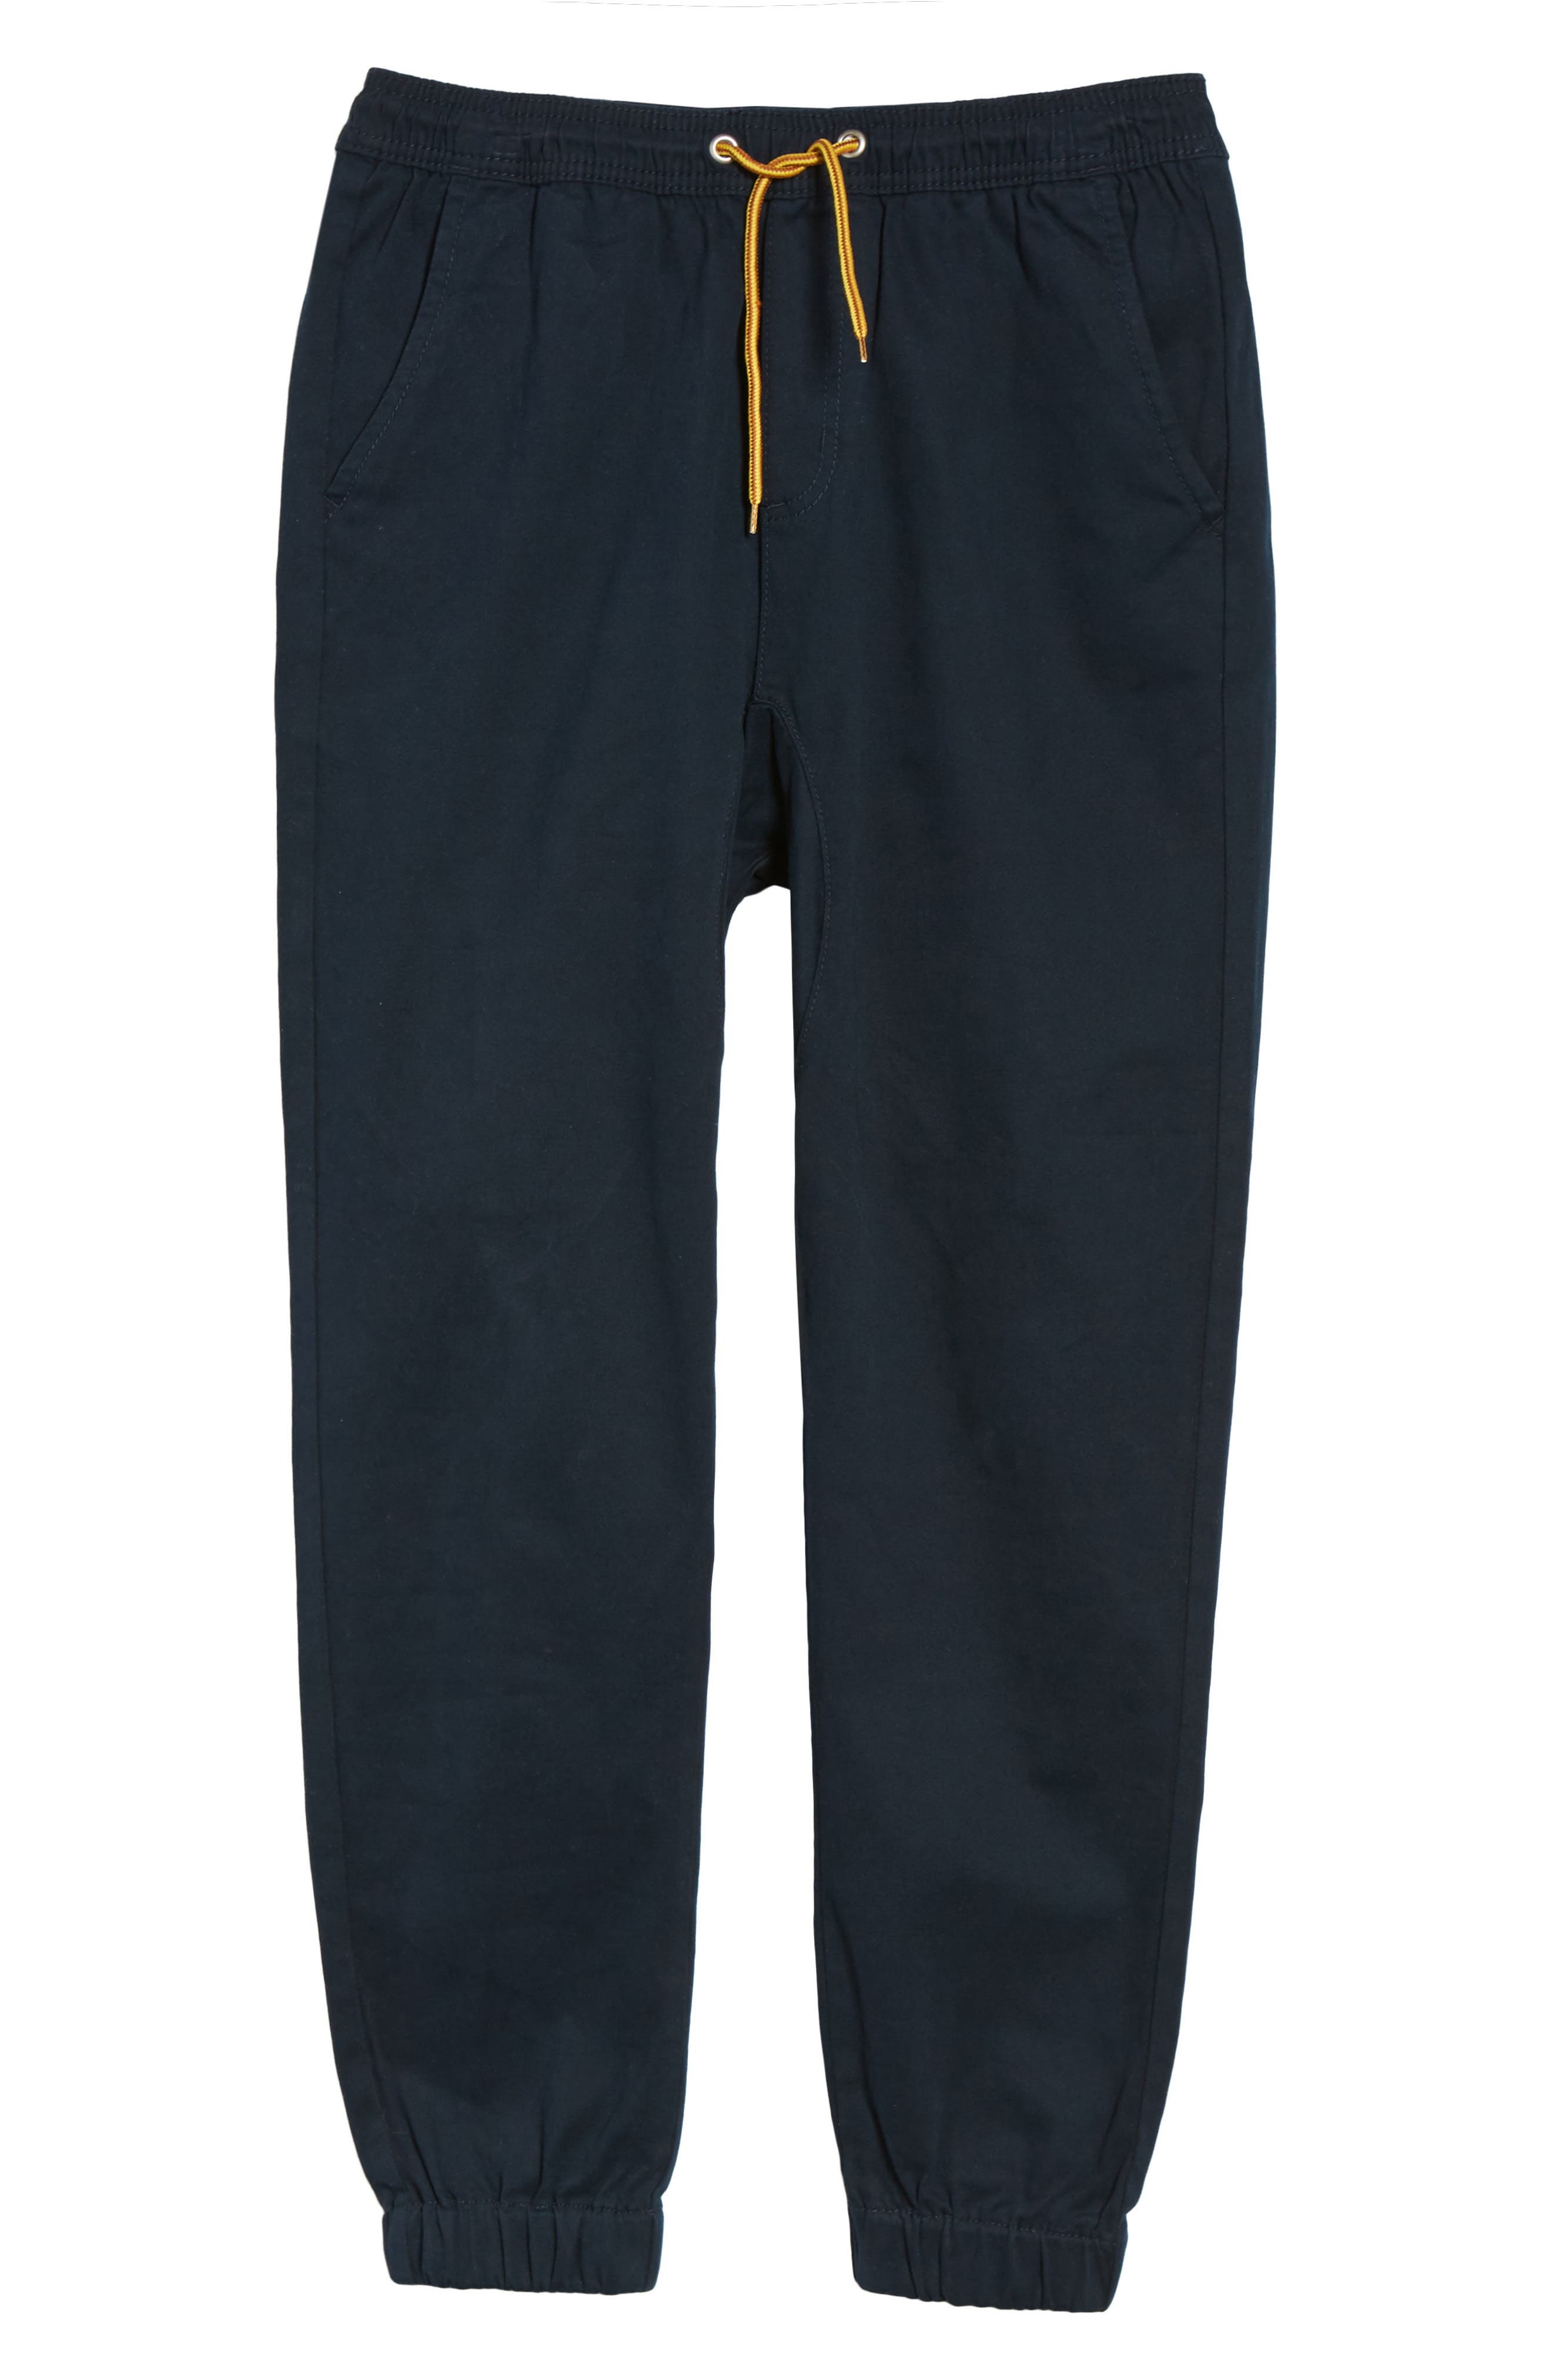 Weekend Jogger Pants,                             Alternate thumbnail 46, color,